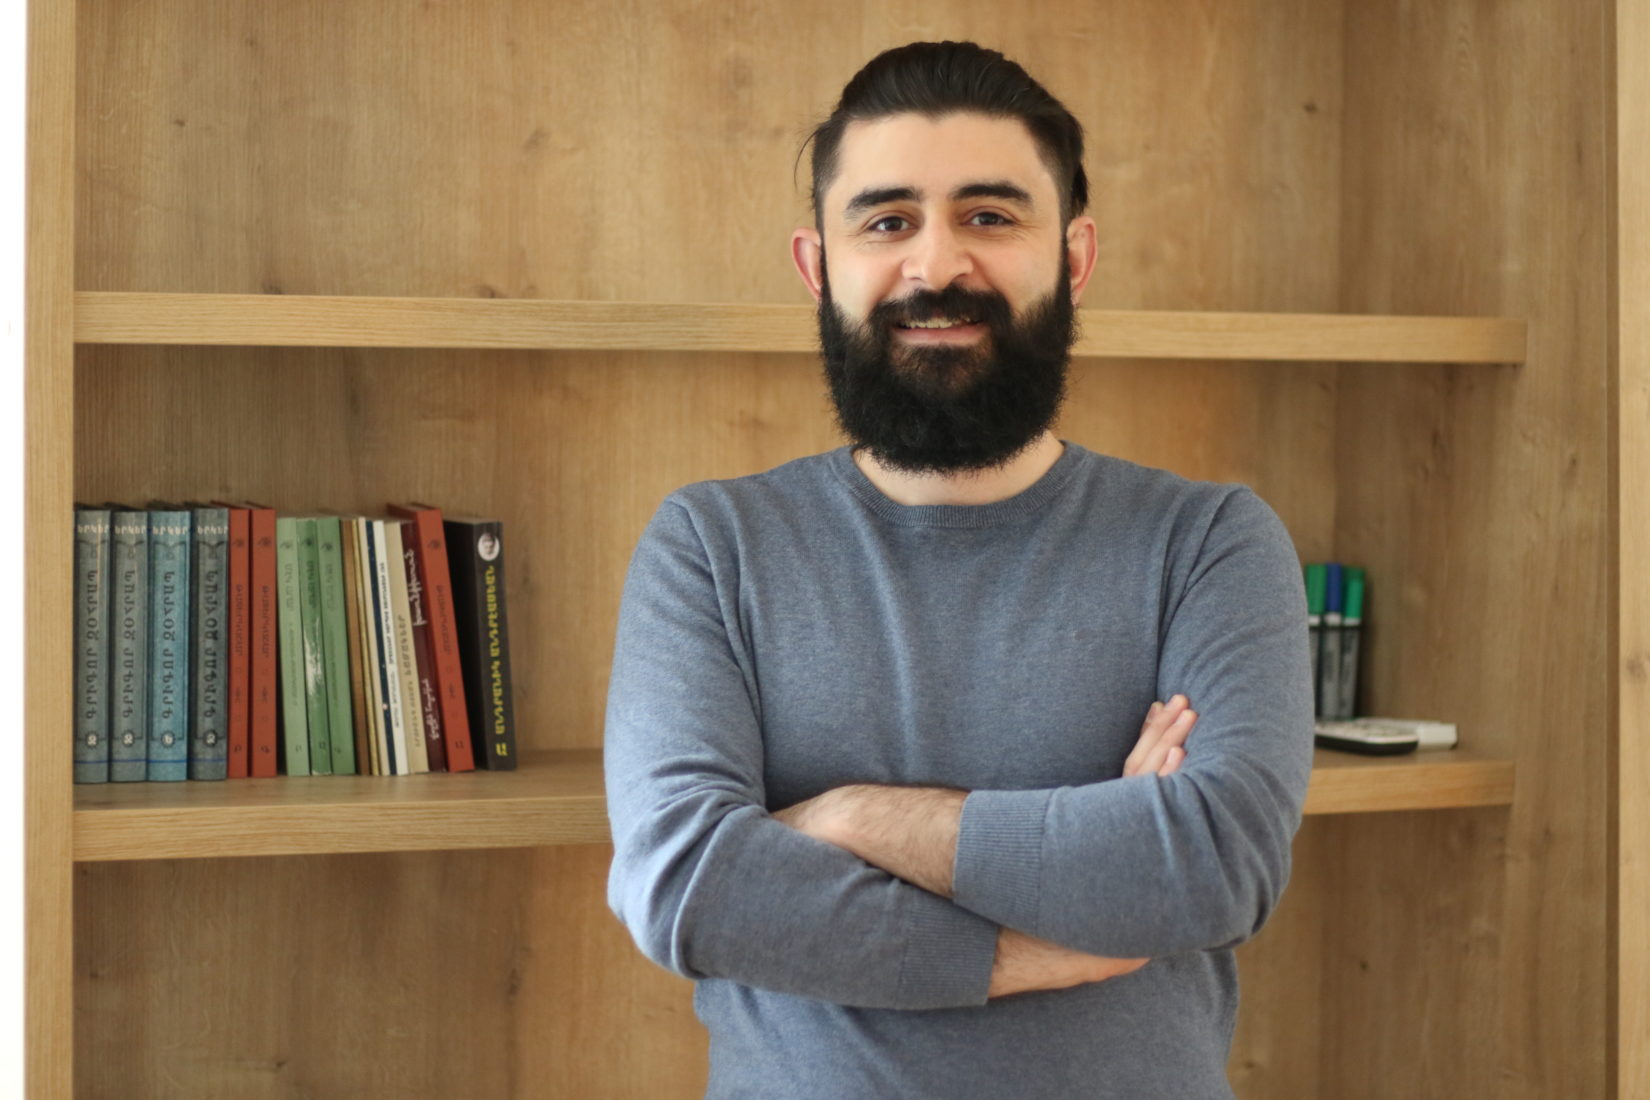 A photo showing a man with dark hair and beard, smiling standing in front of a bookshelf.